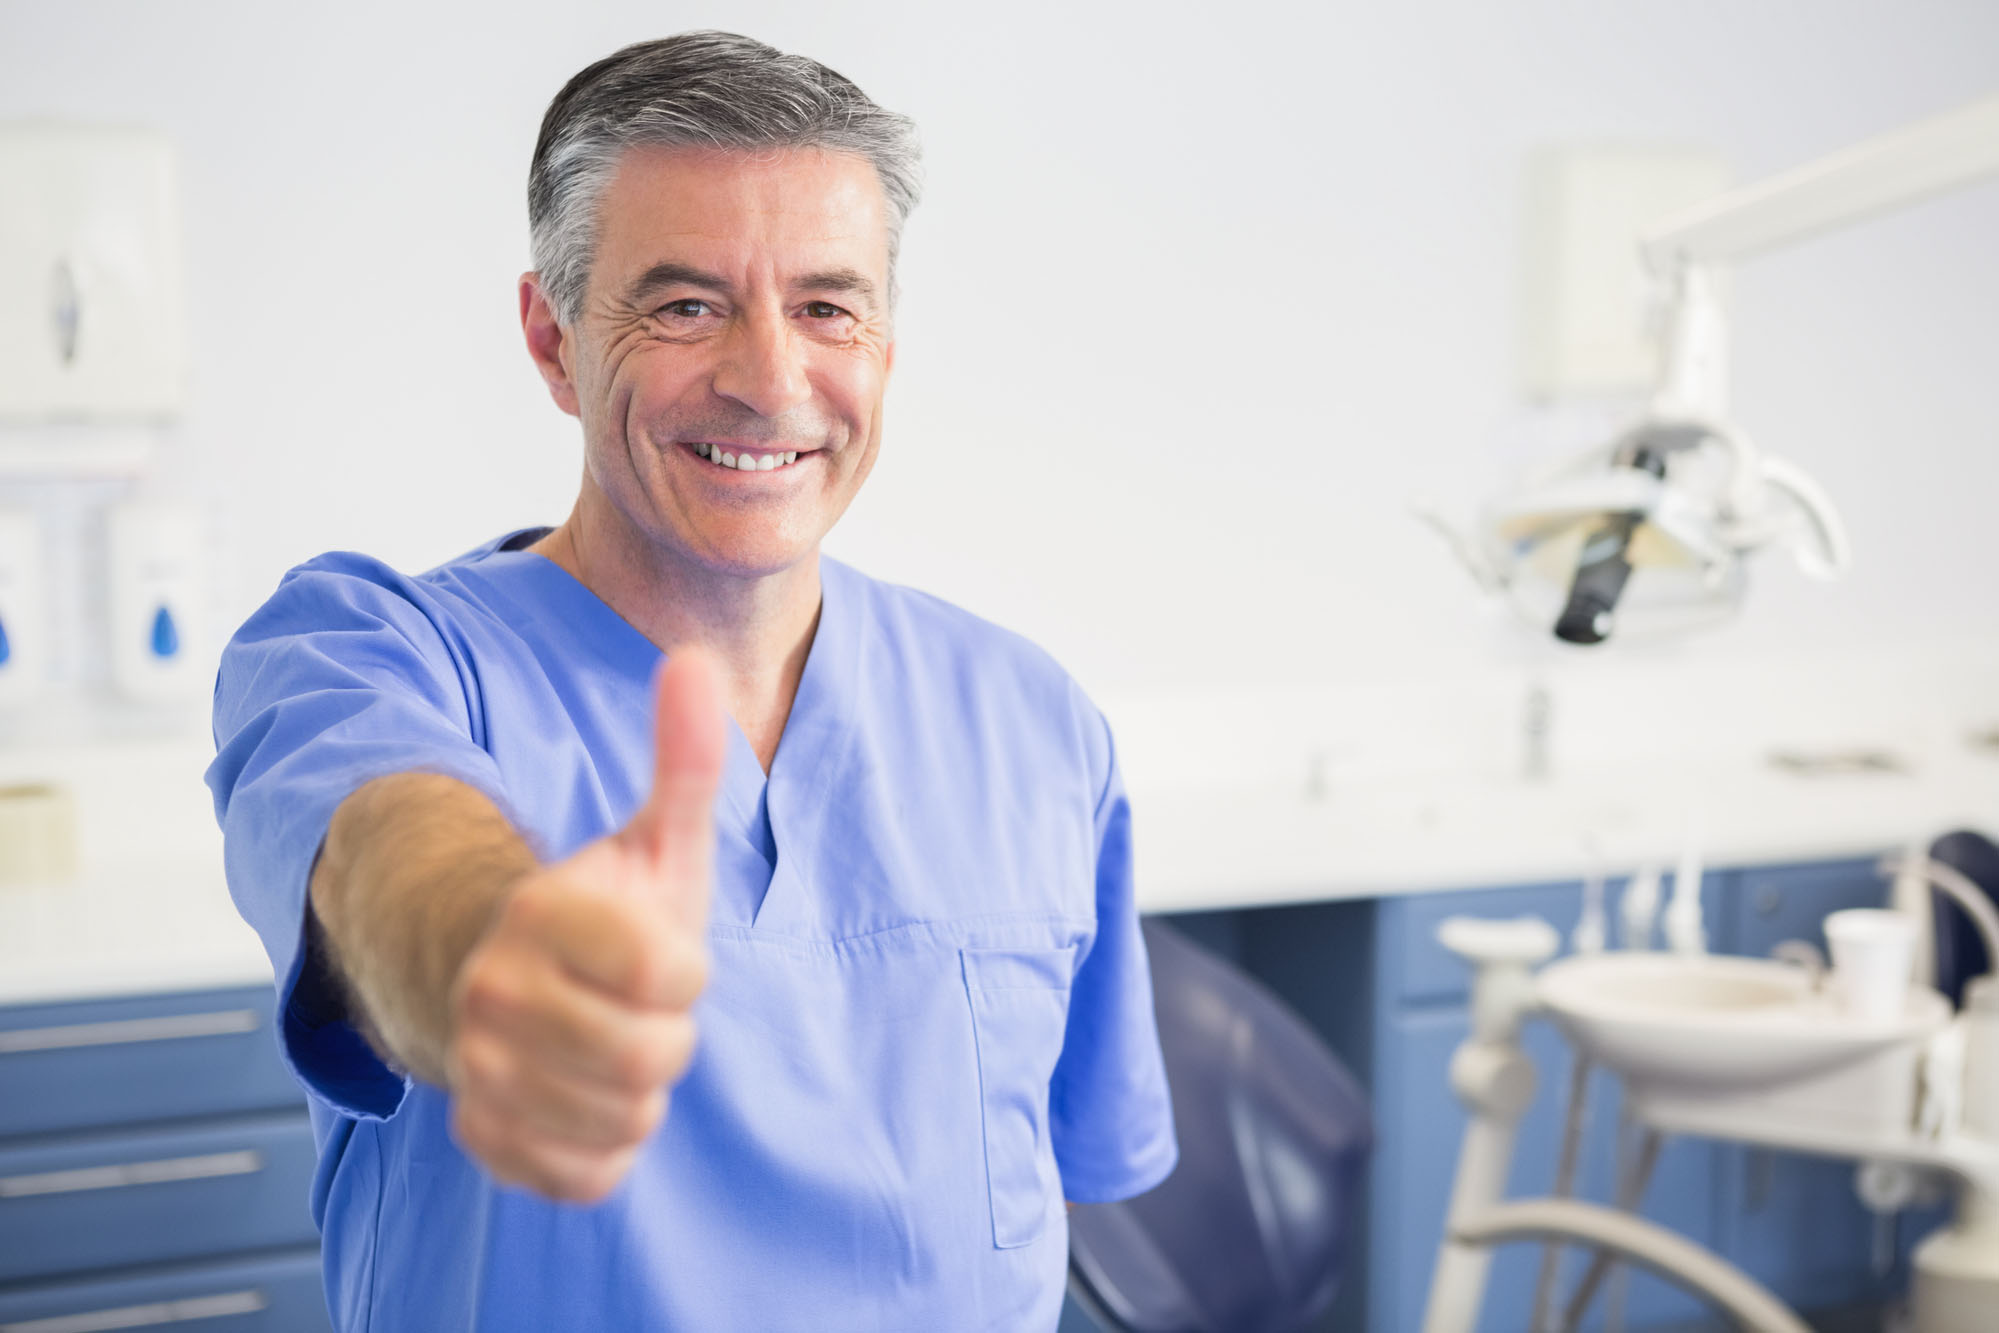 Portrait of happy dentist with thumbs up in dental clinic